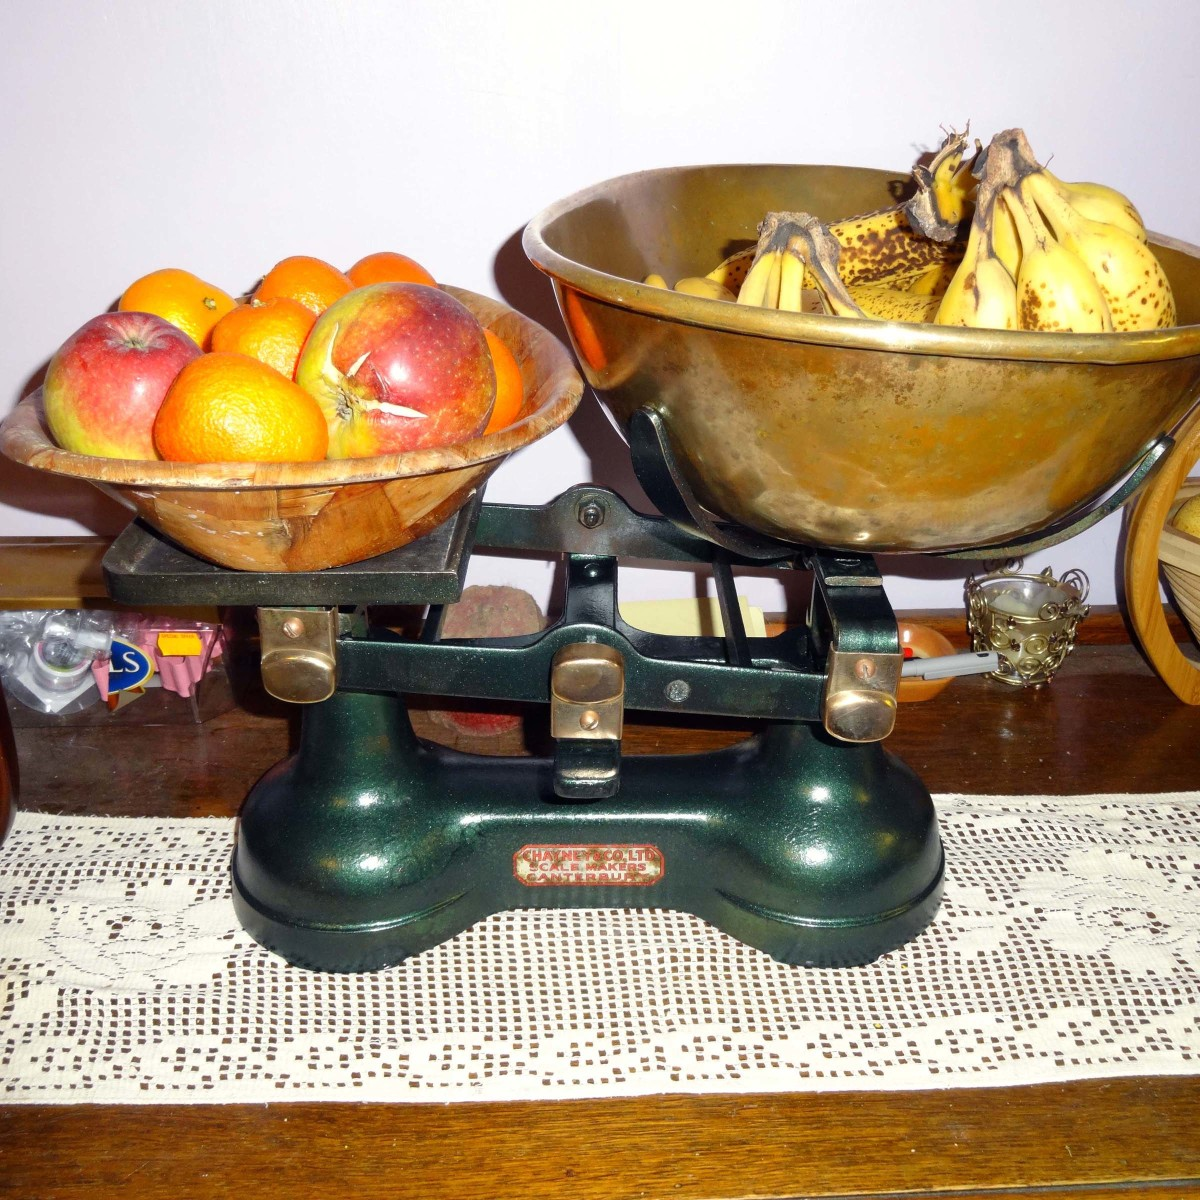 How to Restore and Repurpose a Scale Into a Fruit Bowl